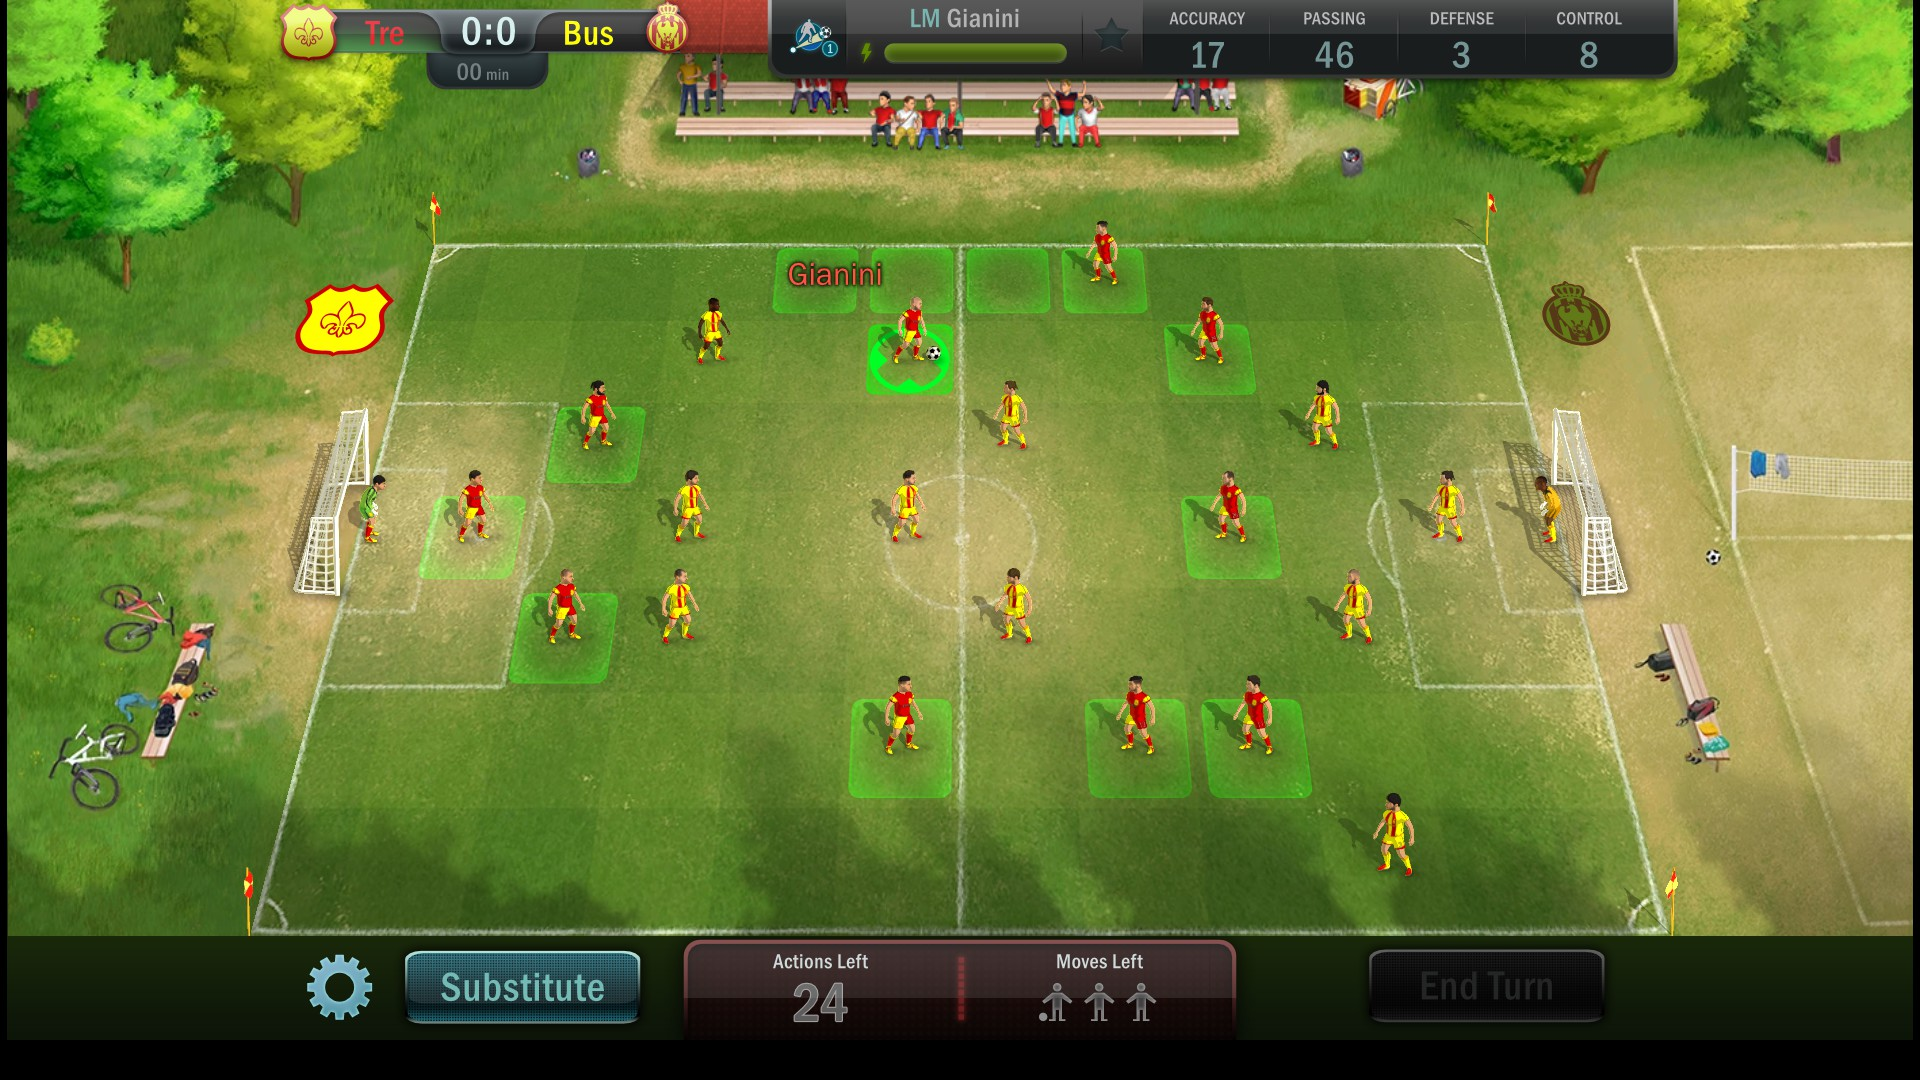 Football, Tactics & Glory review